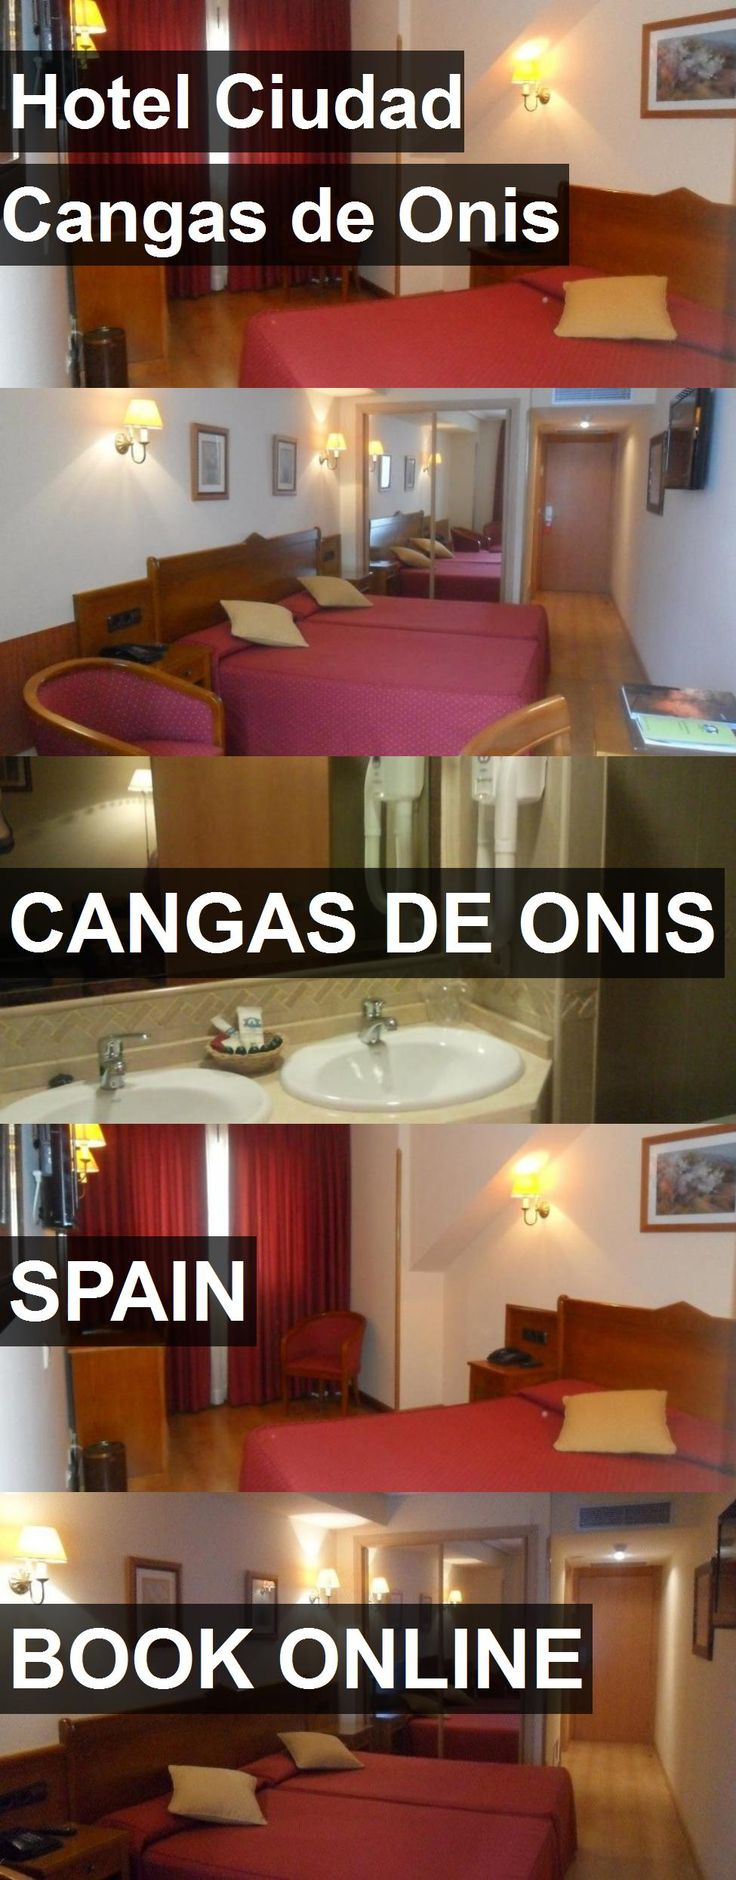 Hotel Ciudad Cangas de Onis in Cangas de Onis, Spain. For more information, photos, reviews and best prices please follow the link. #Spain #CangasdeOnis #travel #vacation #hotel